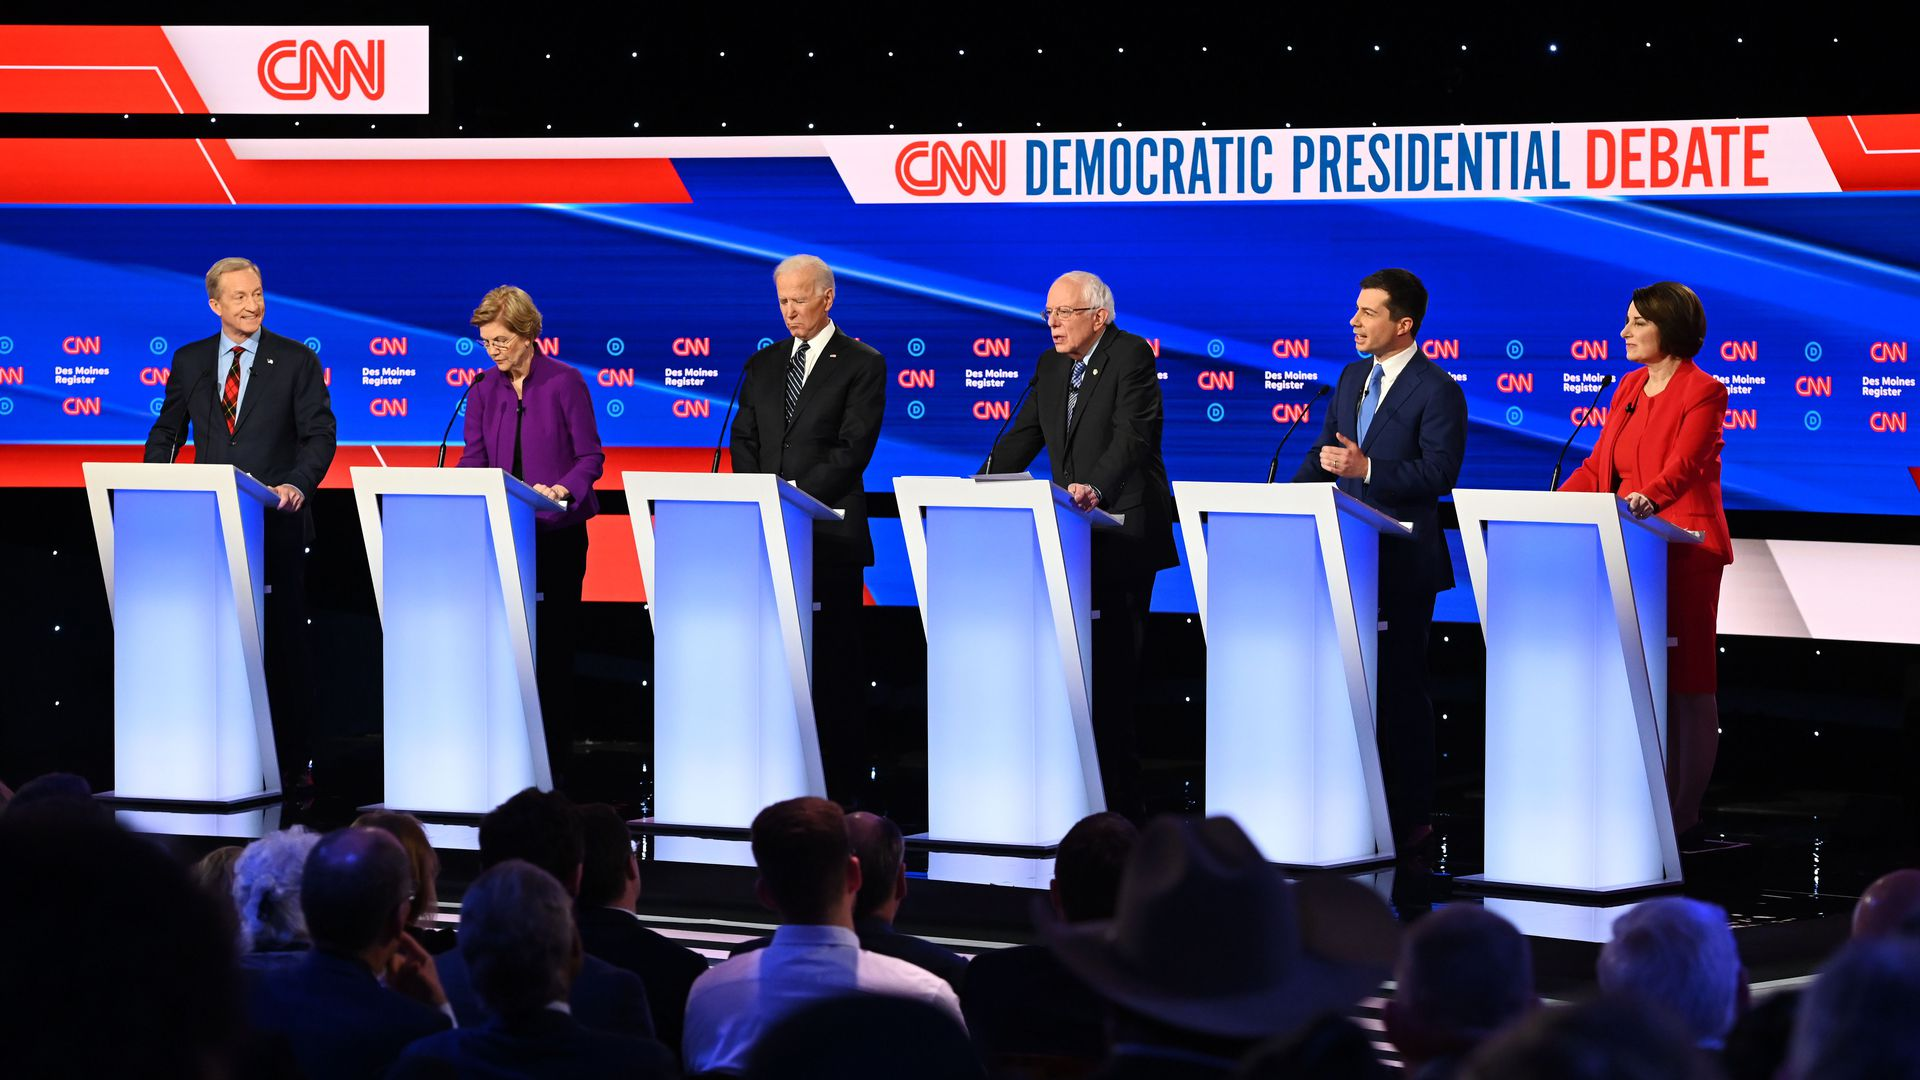 Low-tier 2020 Democrats could qualify for next debate